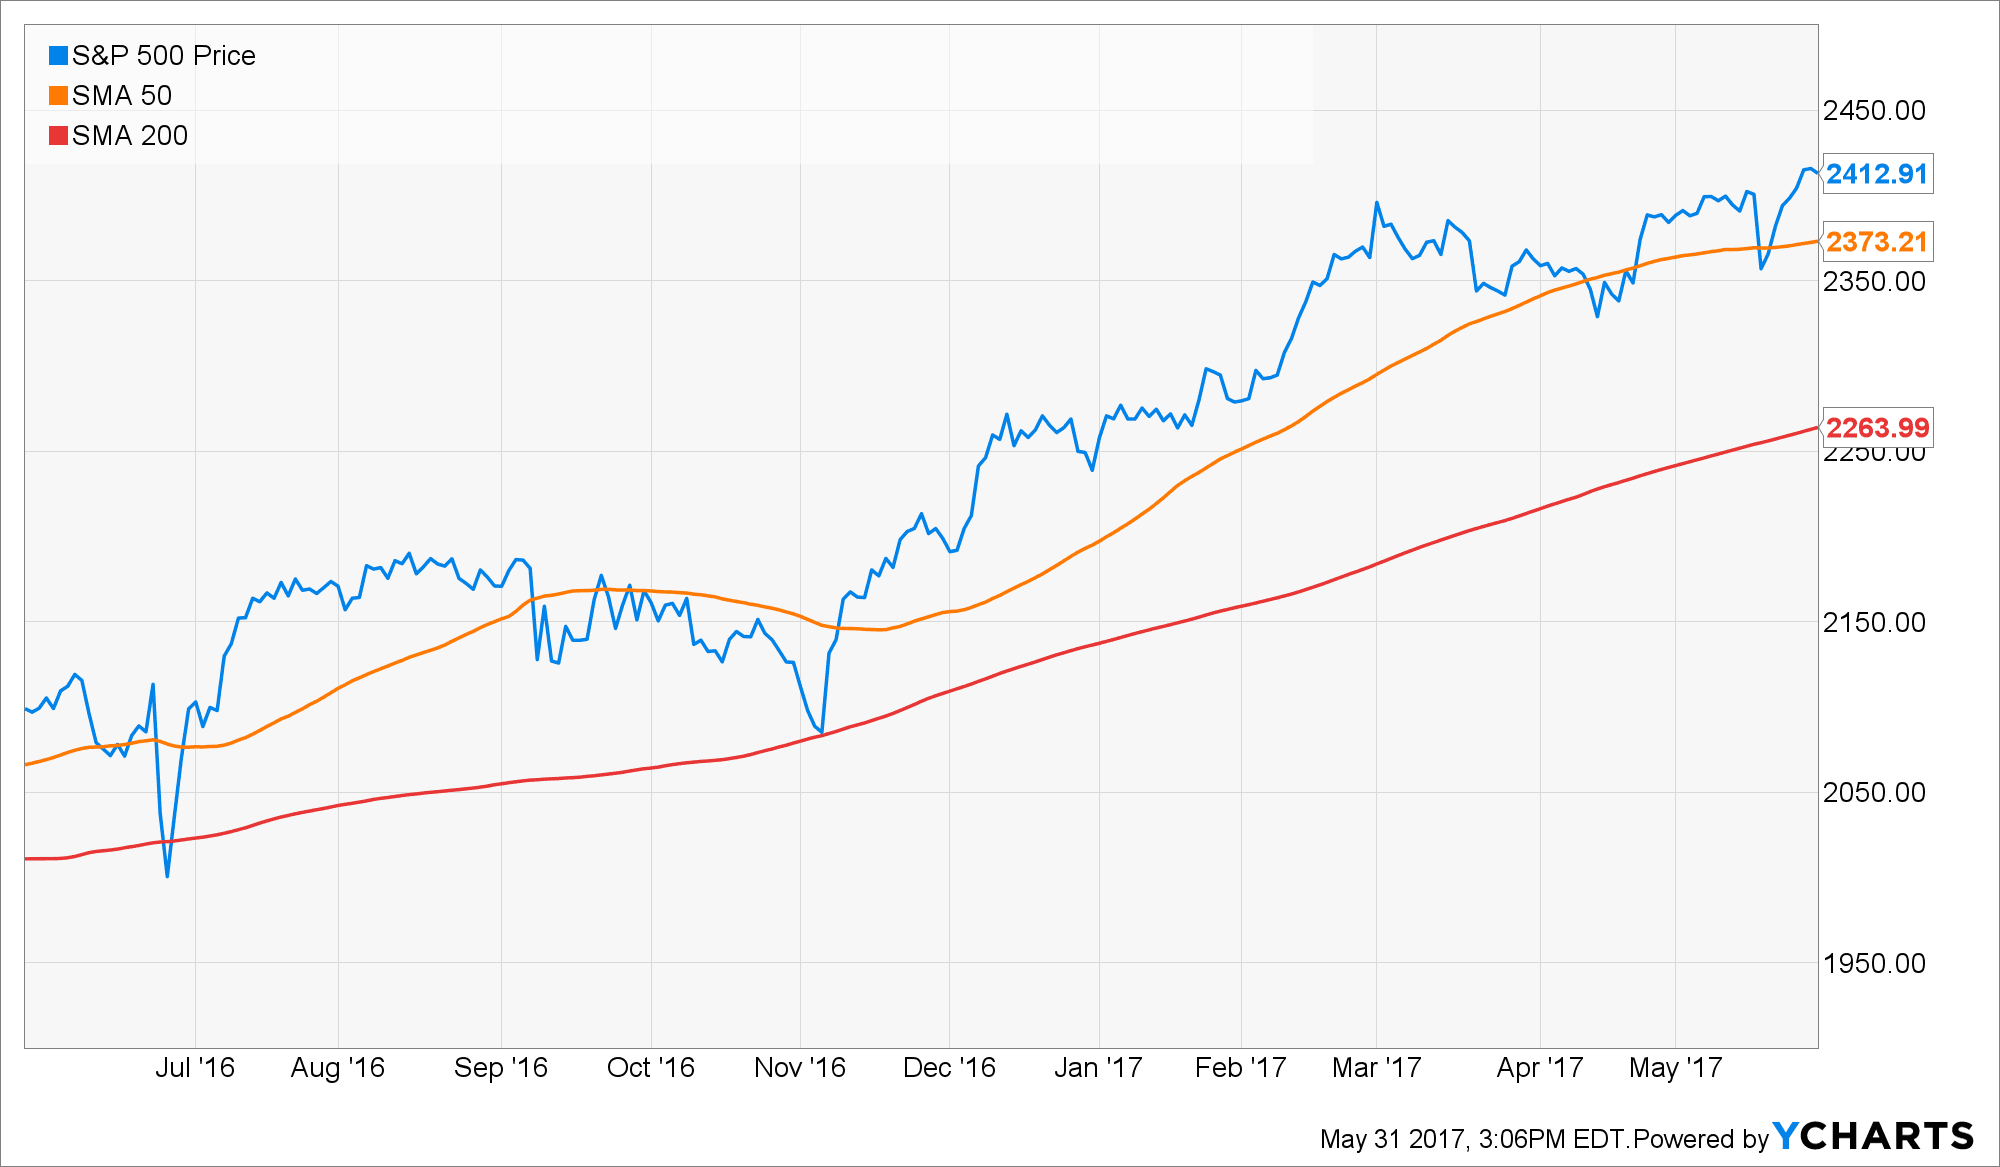 S&P 500 Chart for May 31 spanning 1 year with 50 day and 200 day simple moving averages